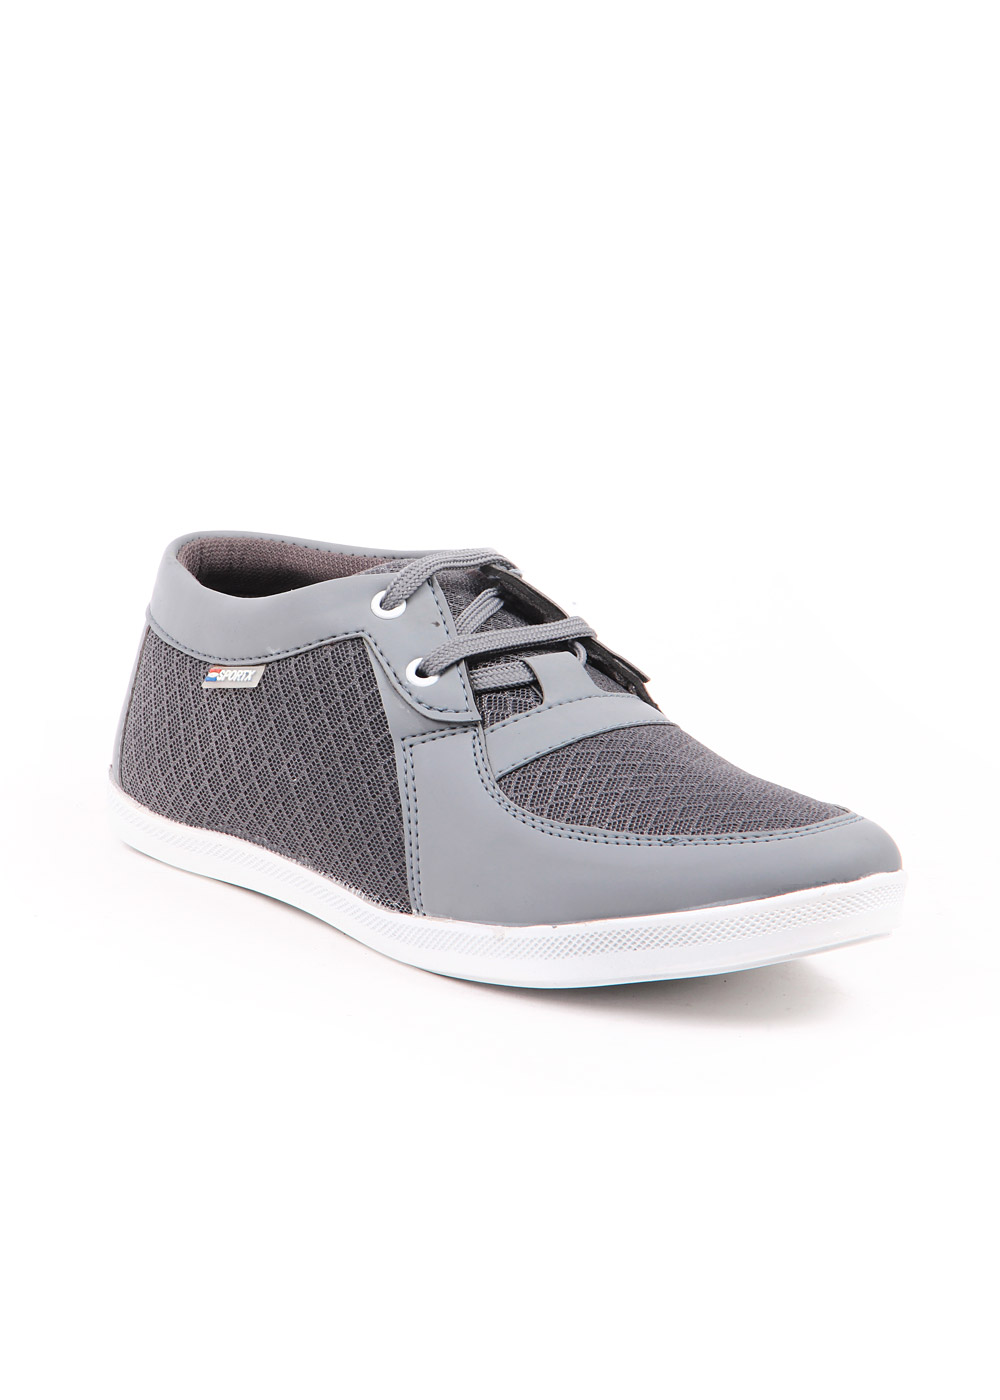 foot n style grey casual shoes